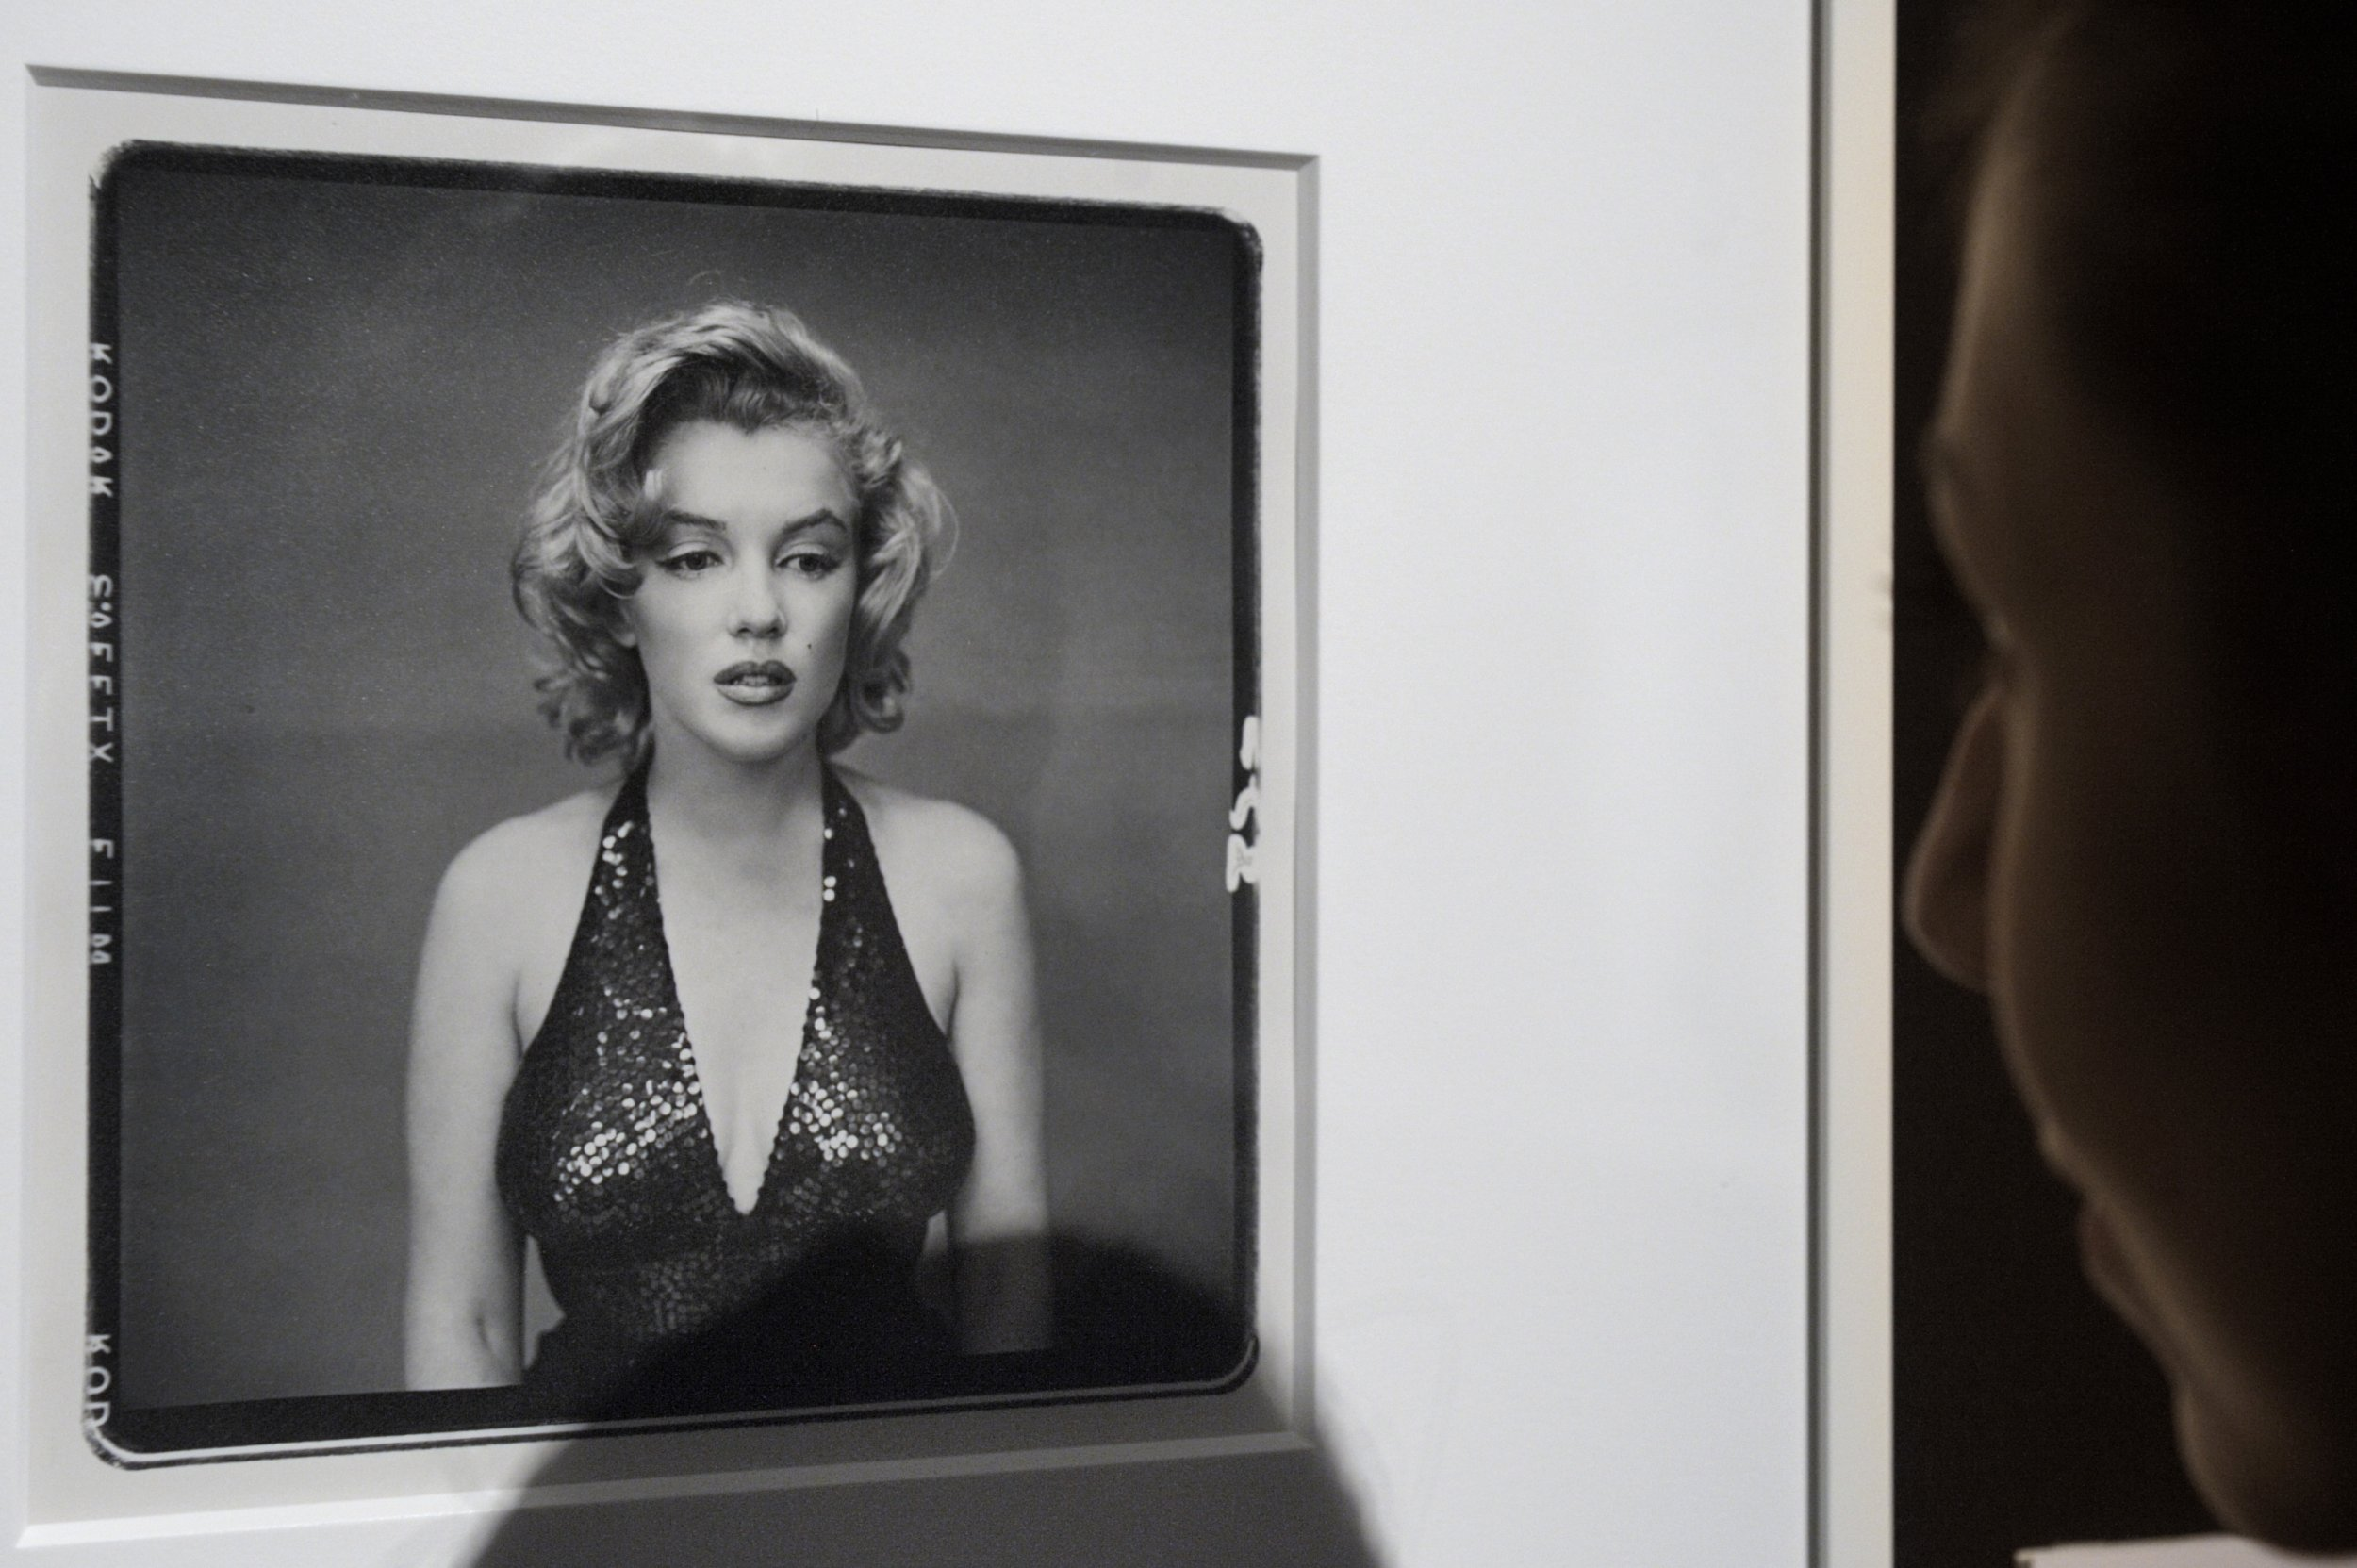 Why Marilyn Monroe Is Still So Famous